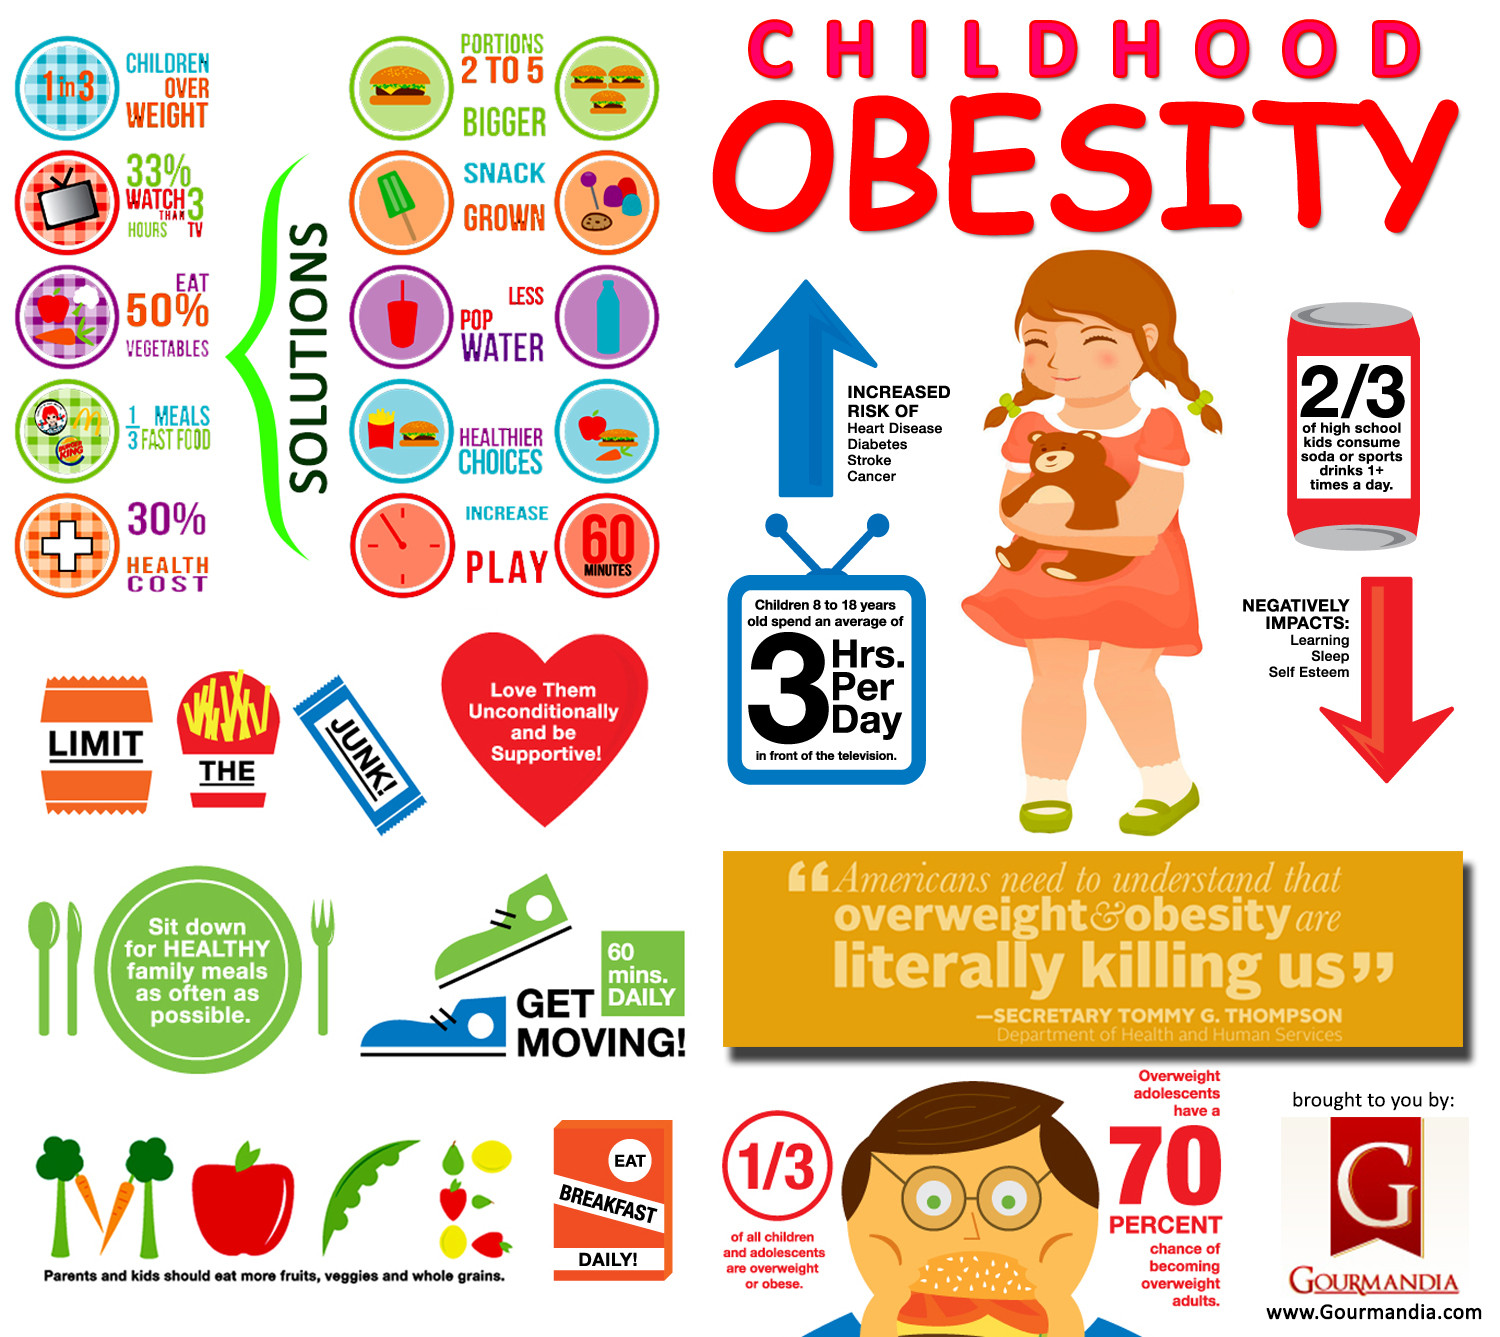 http://thumbnails-visually.netdna-ssl.com/childhood-obesity_51cbffd0a1290_w1500.jpg